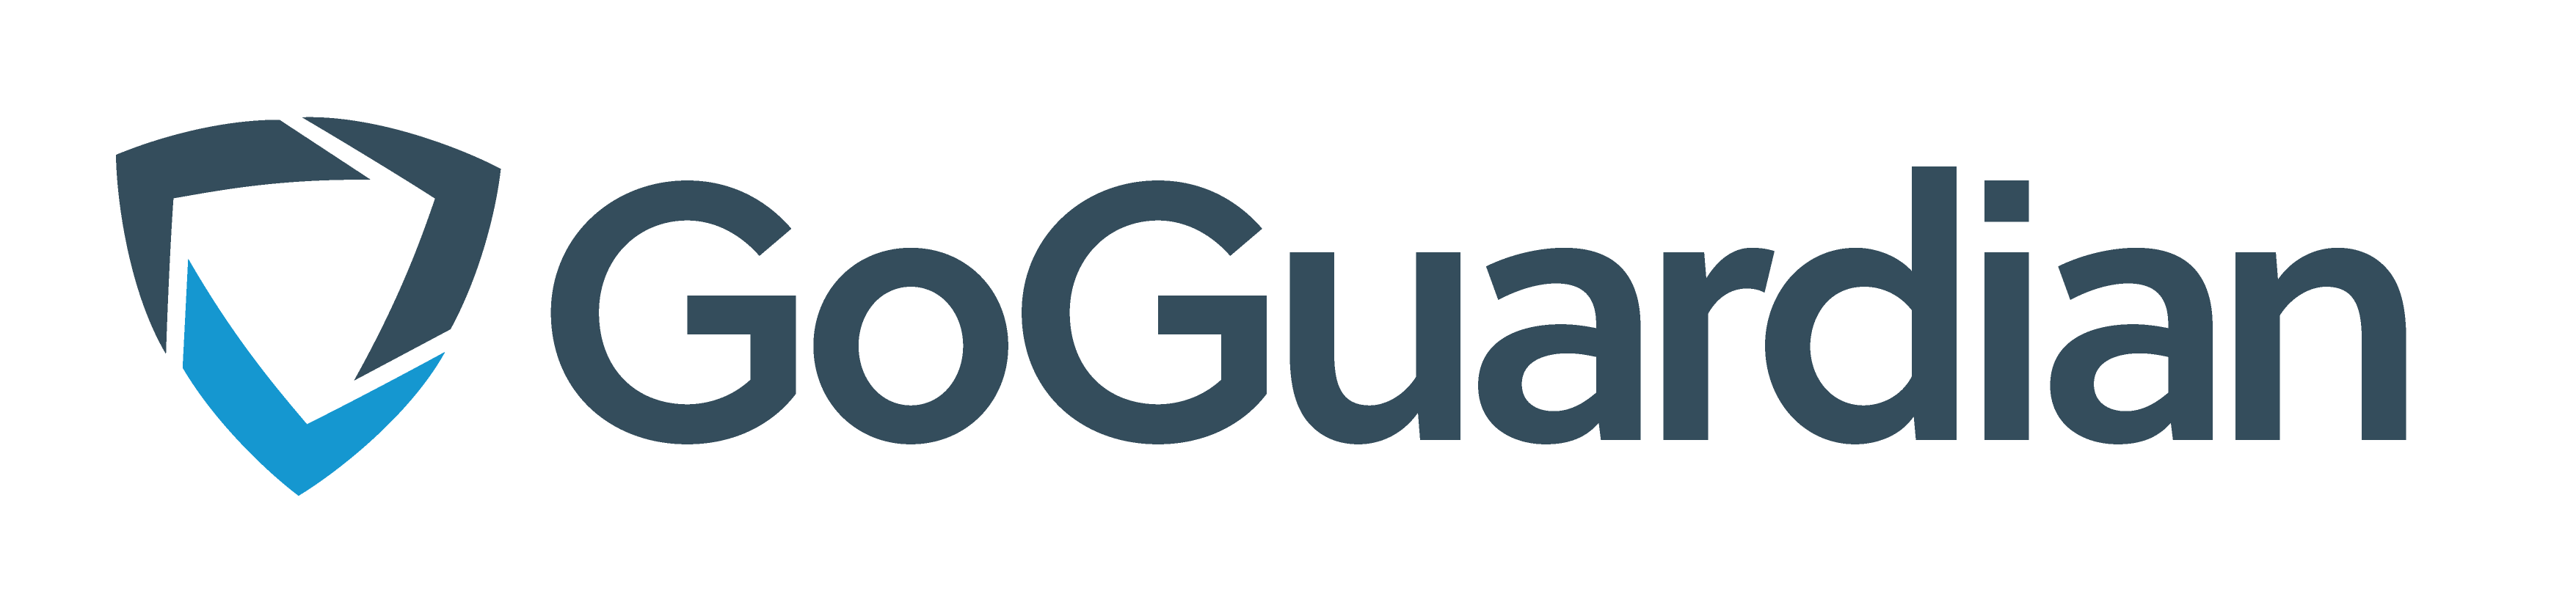 Image result for goguardian